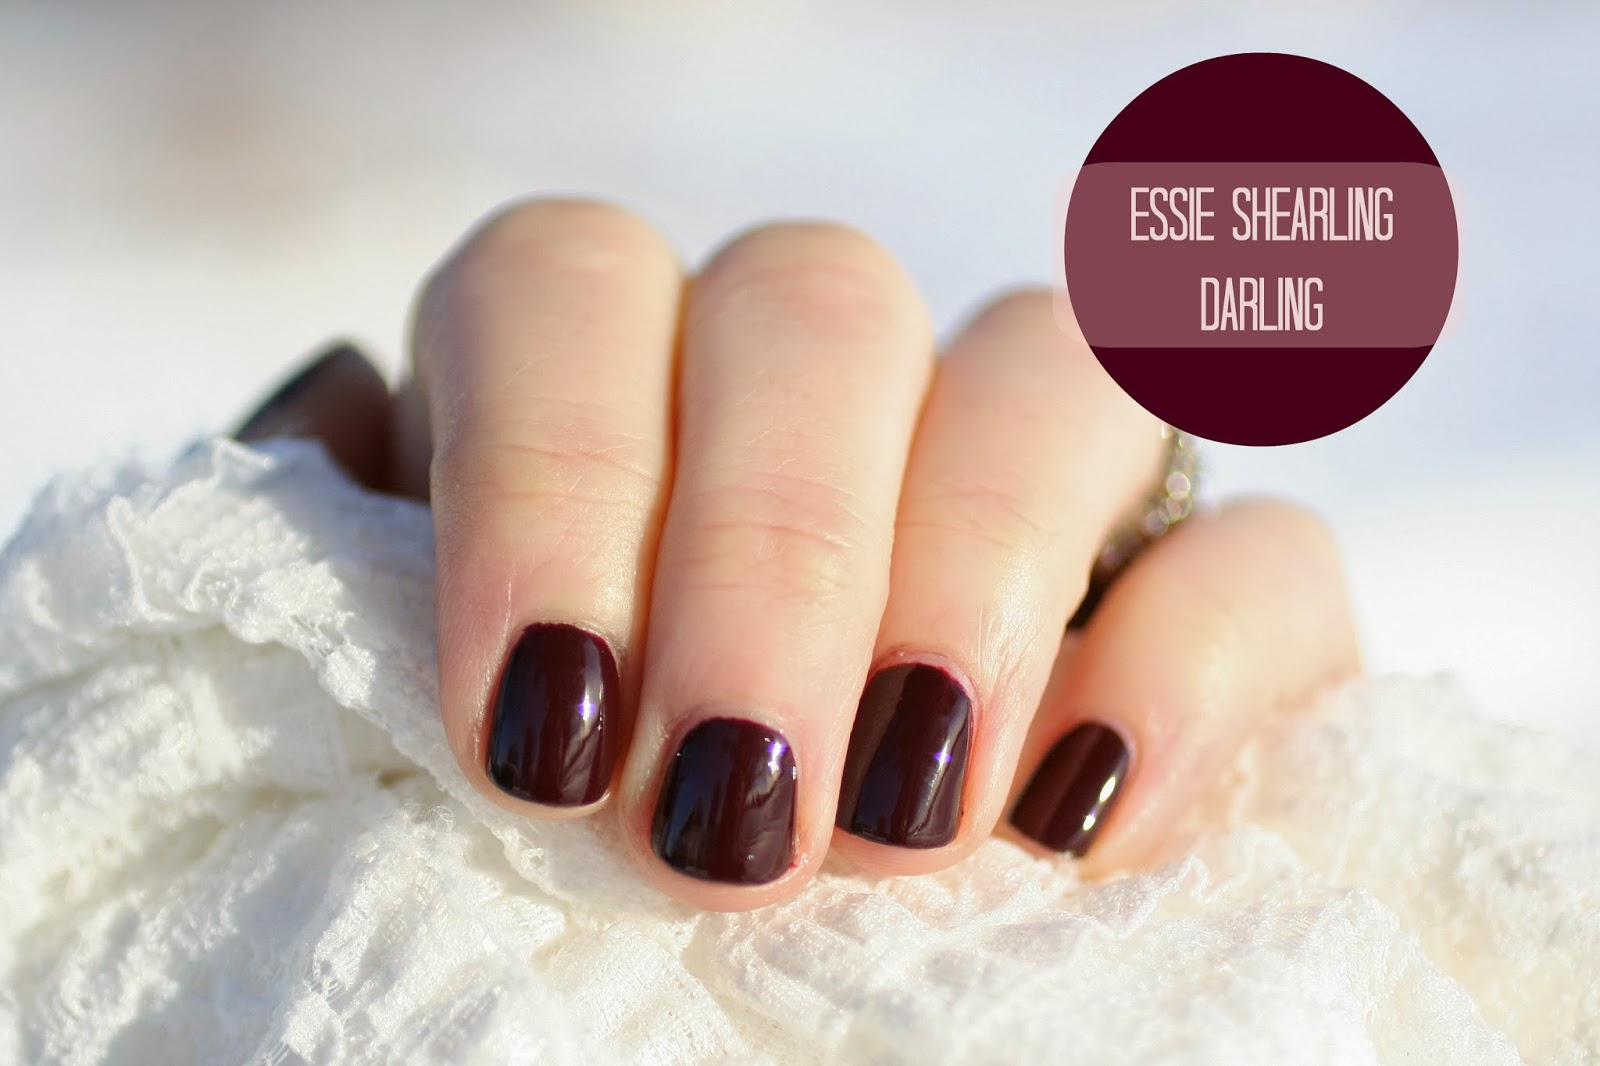 Watch Essie's Winter Wonderland: The 2013 Shearling Darling Collection video